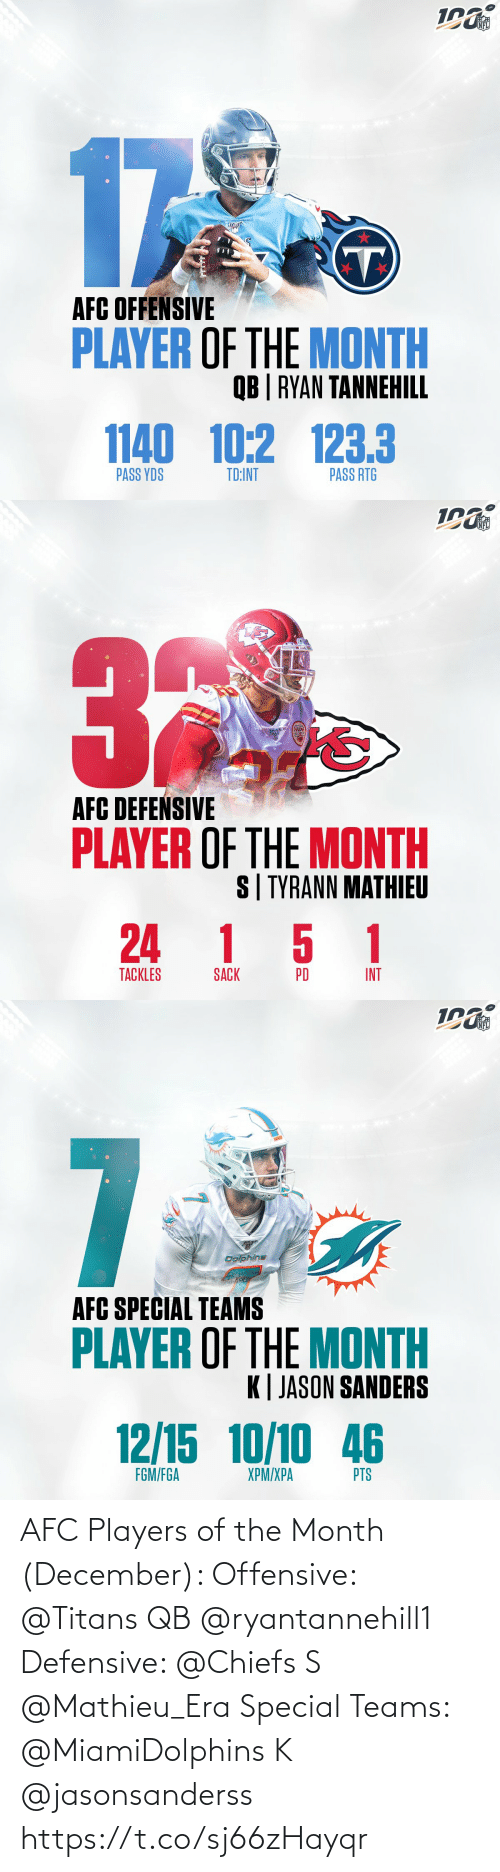 Memes, Nfl, and Chiefs: NFL  17  AFC OFFENSIVE  PLAYER OF THE MONTH  QB | RYAN TANNEHILL  1140 10:2 123.3  PASS RTG  PASS YDS  TD:INT   NFL  AFC DEFEŃSIVE  PLAYER OF THE MONTH  S| TYRANN MATHIEU  24 1 5 1  TACKLES  INT  PD  SACK   NFL  7  Dolphins  AFC SPECIAL TEAMS  PLAYER OF THE MONTH  K| JASON SANDERS  12/15 10/10 46  FGM/FGA  XPM/XPA  PTS AFC Players of the Month (December):   Offensive: @Titans QB @ryantannehill1    Defensive: @Chiefs S @Mathieu_Era   Special Teams: @MiamiDolphins K @jasonsanderss https://t.co/sj66zHayqr